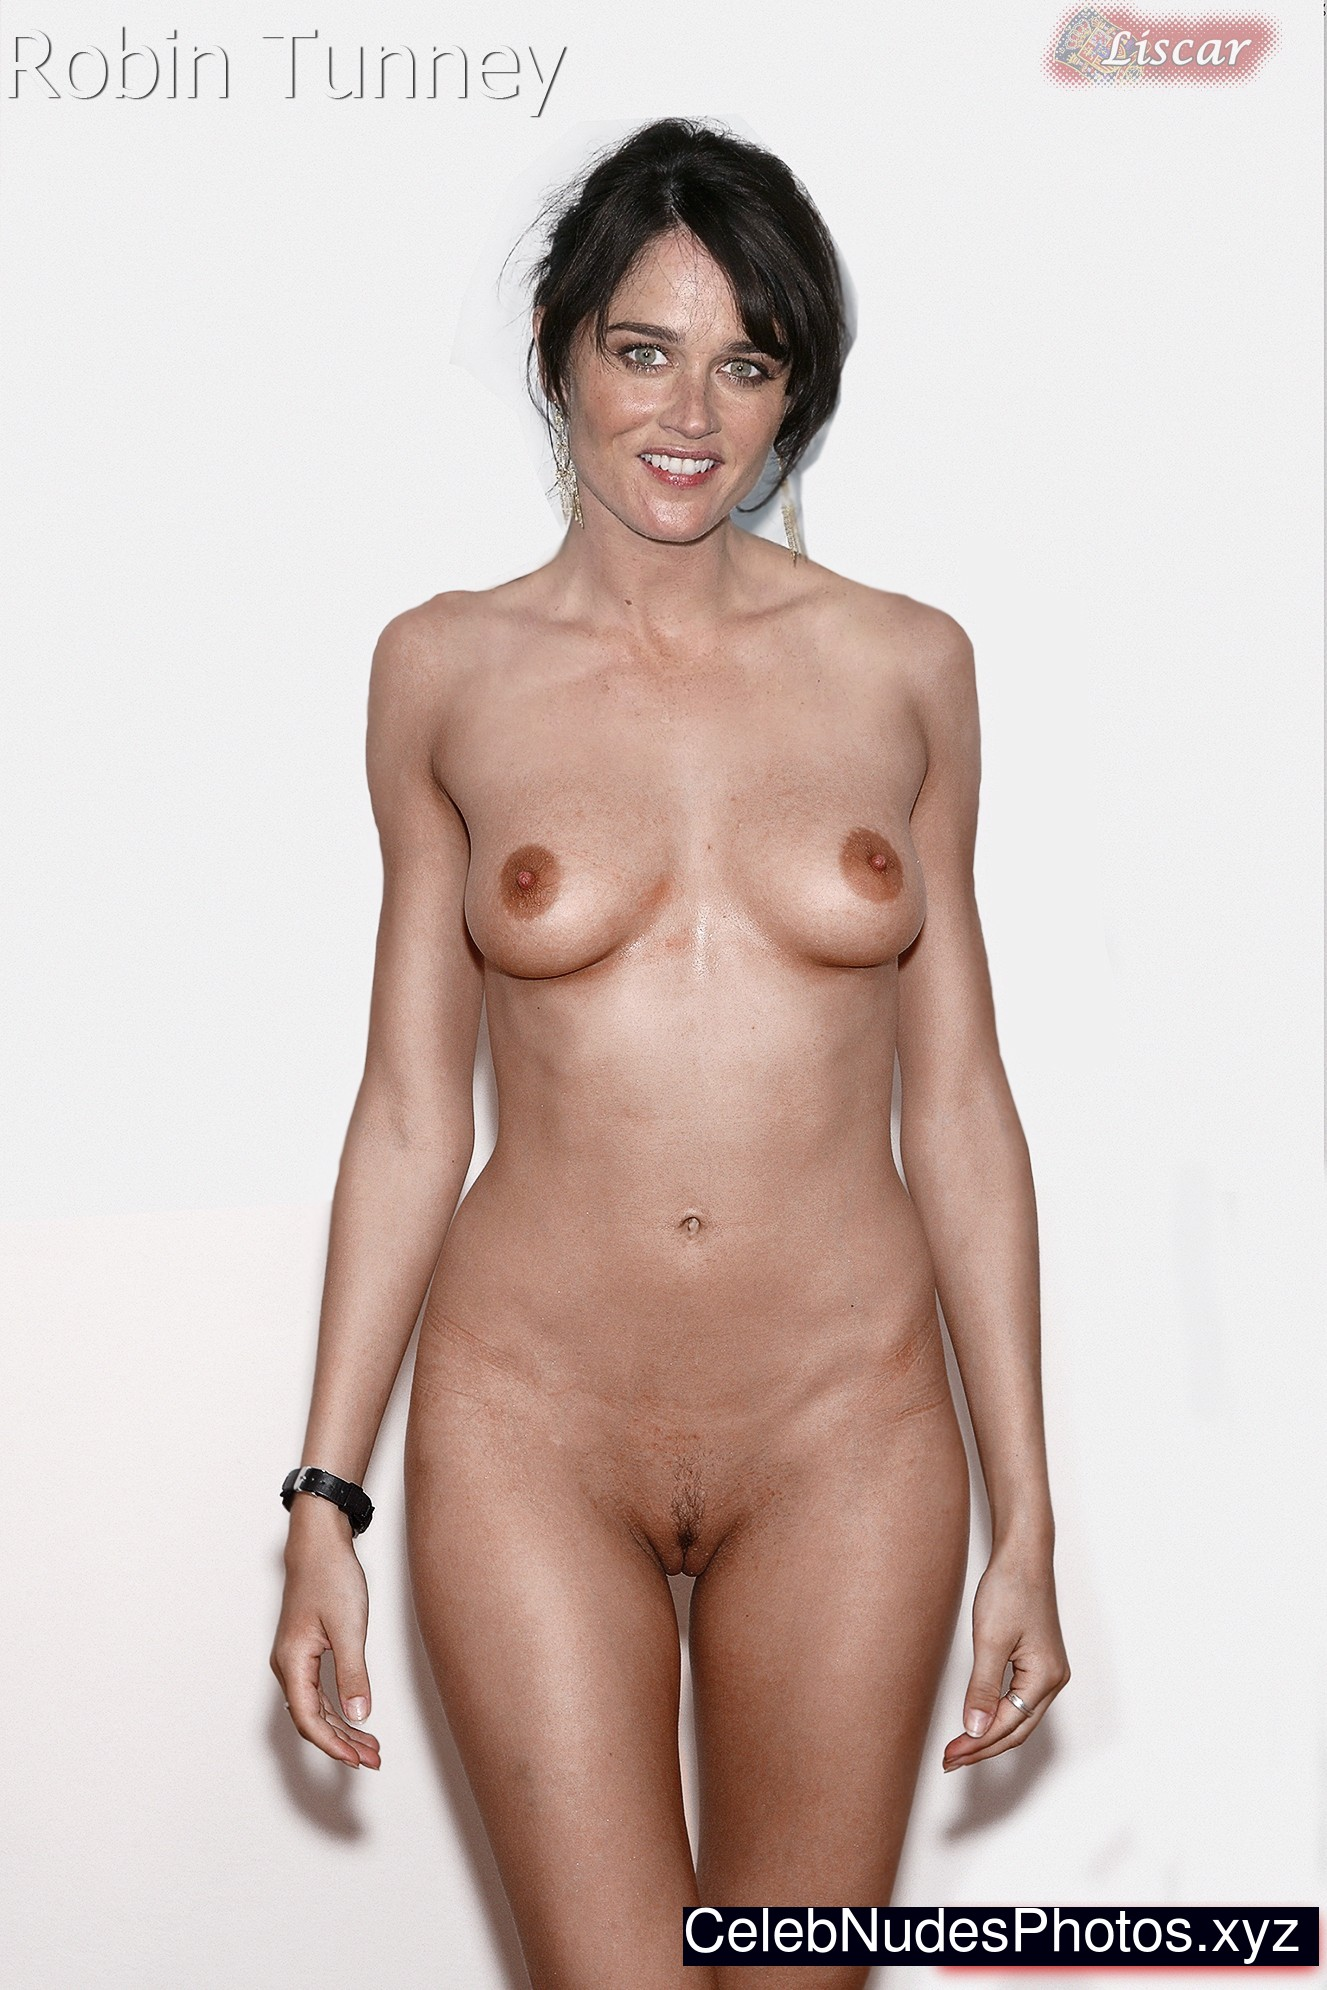 robin tunney naked pictures